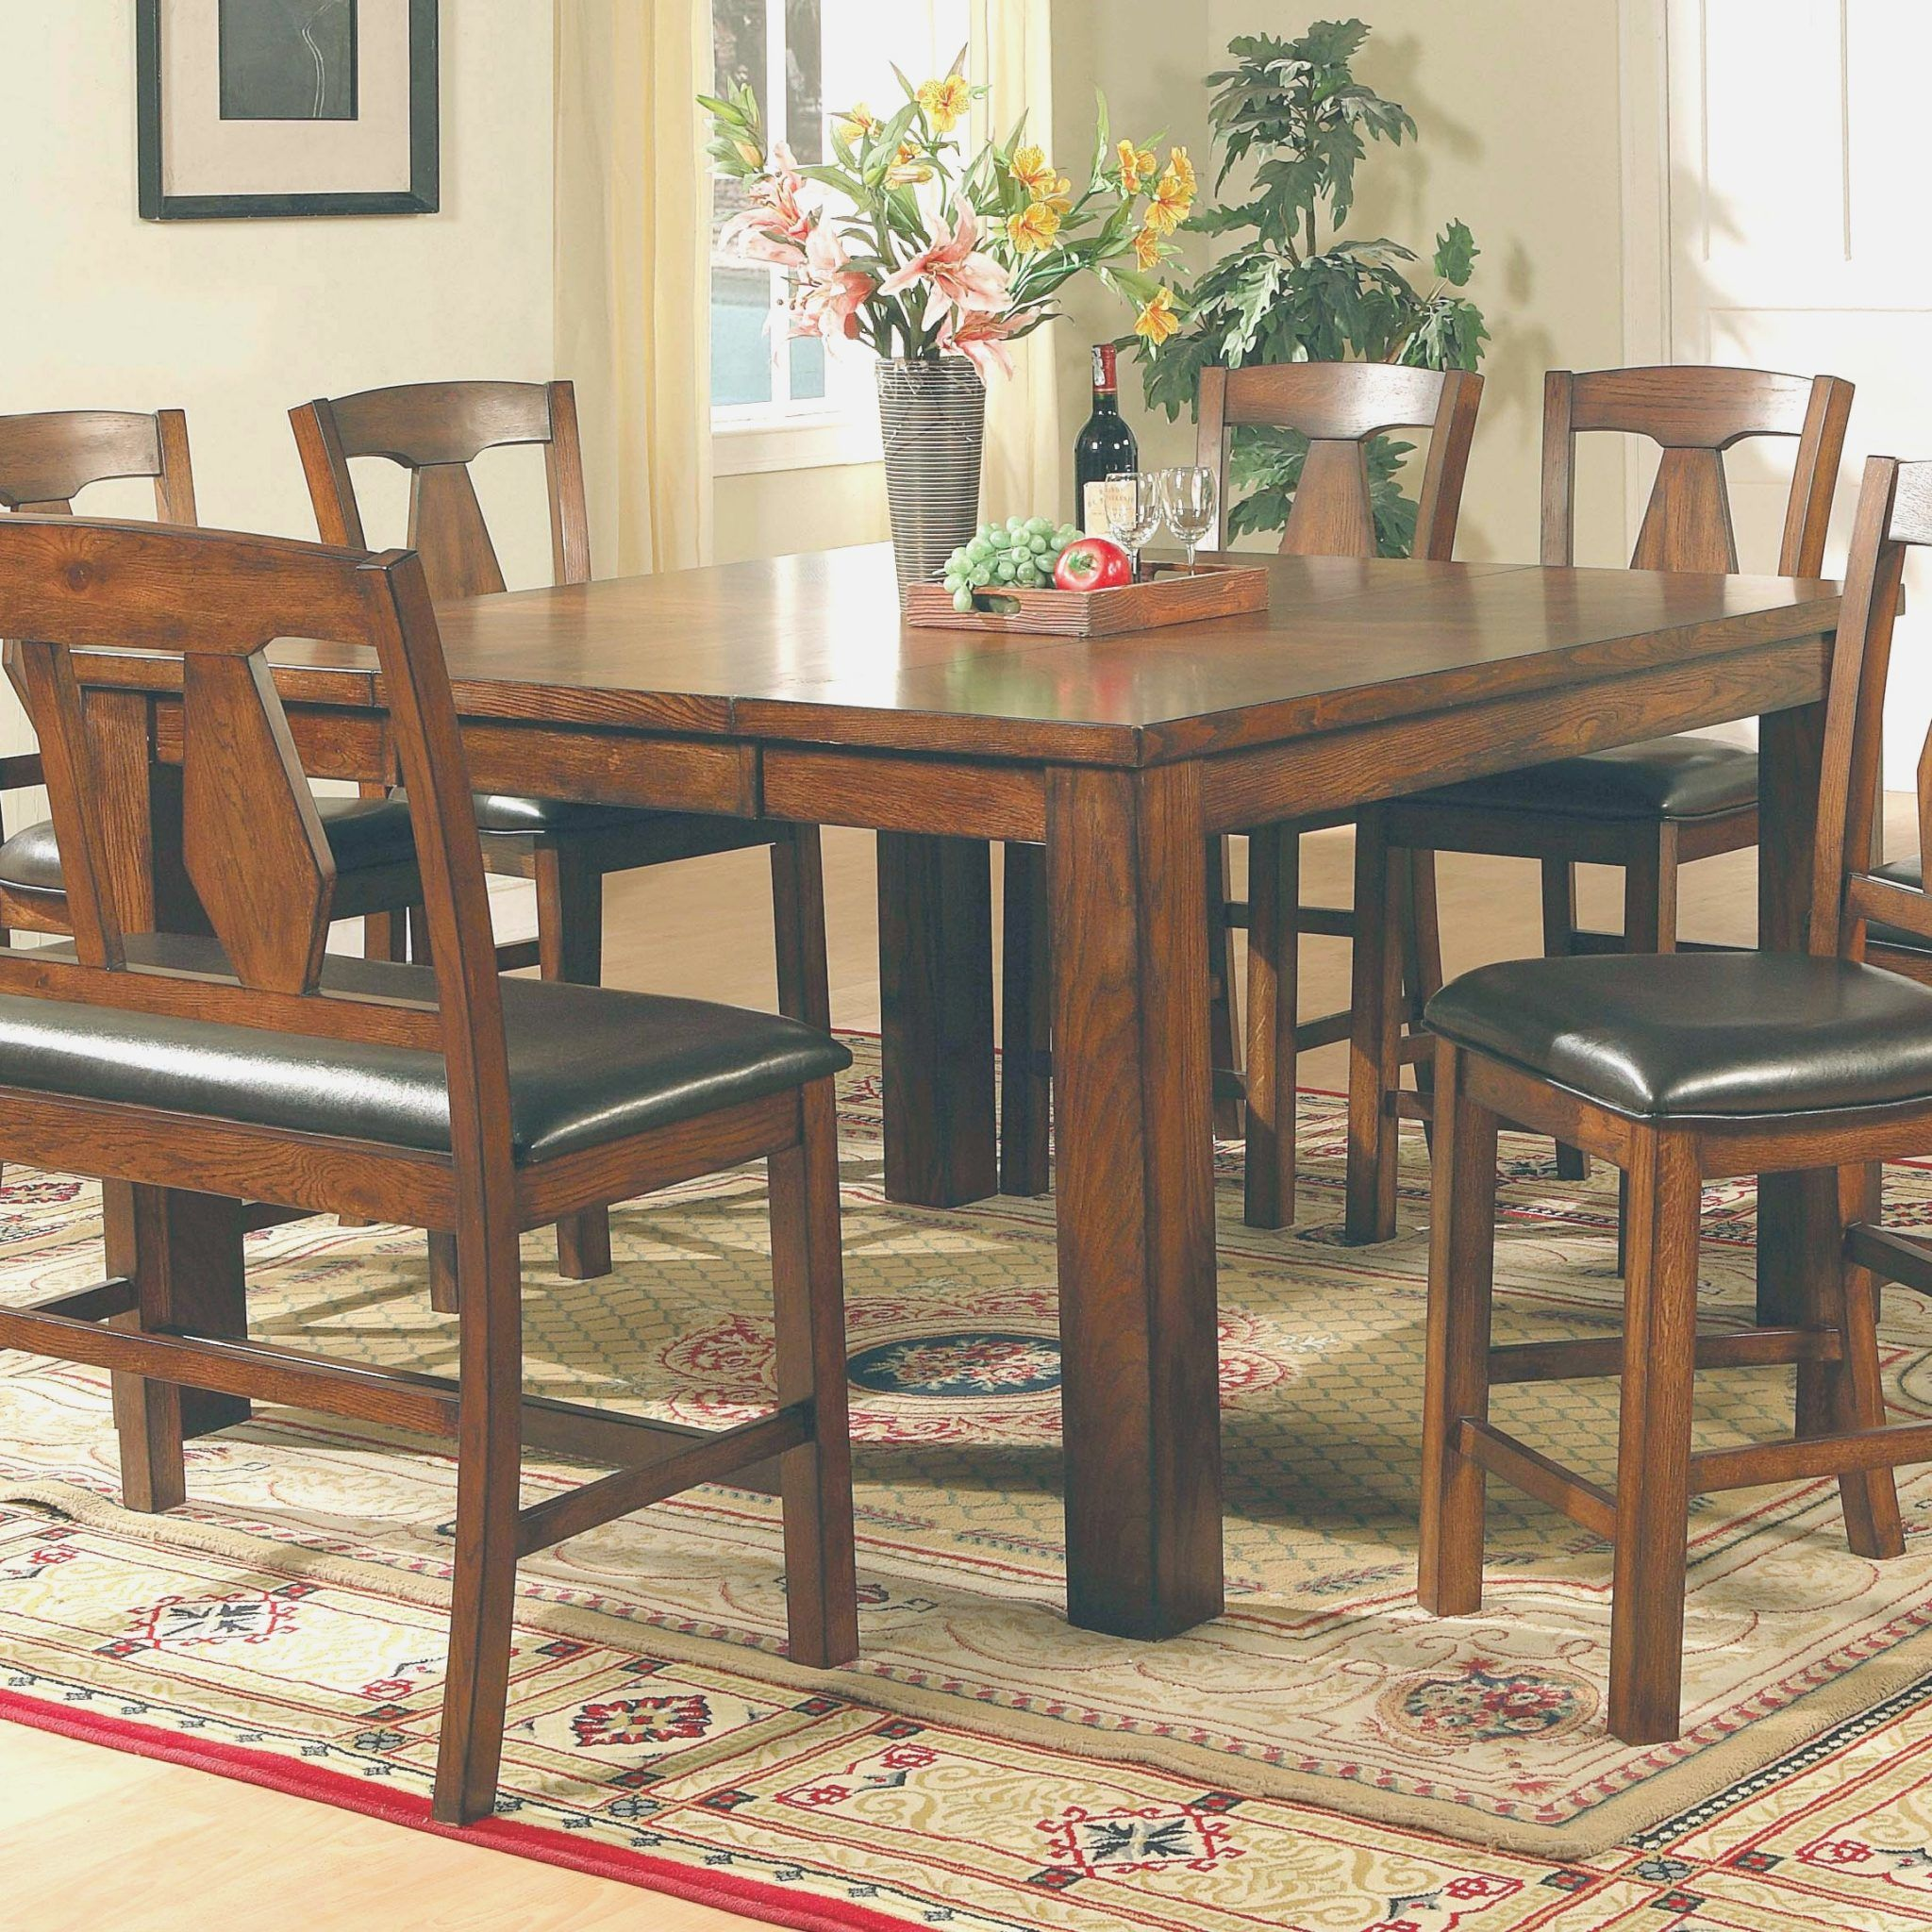 Kitchen Table With Leaf Insert Gl